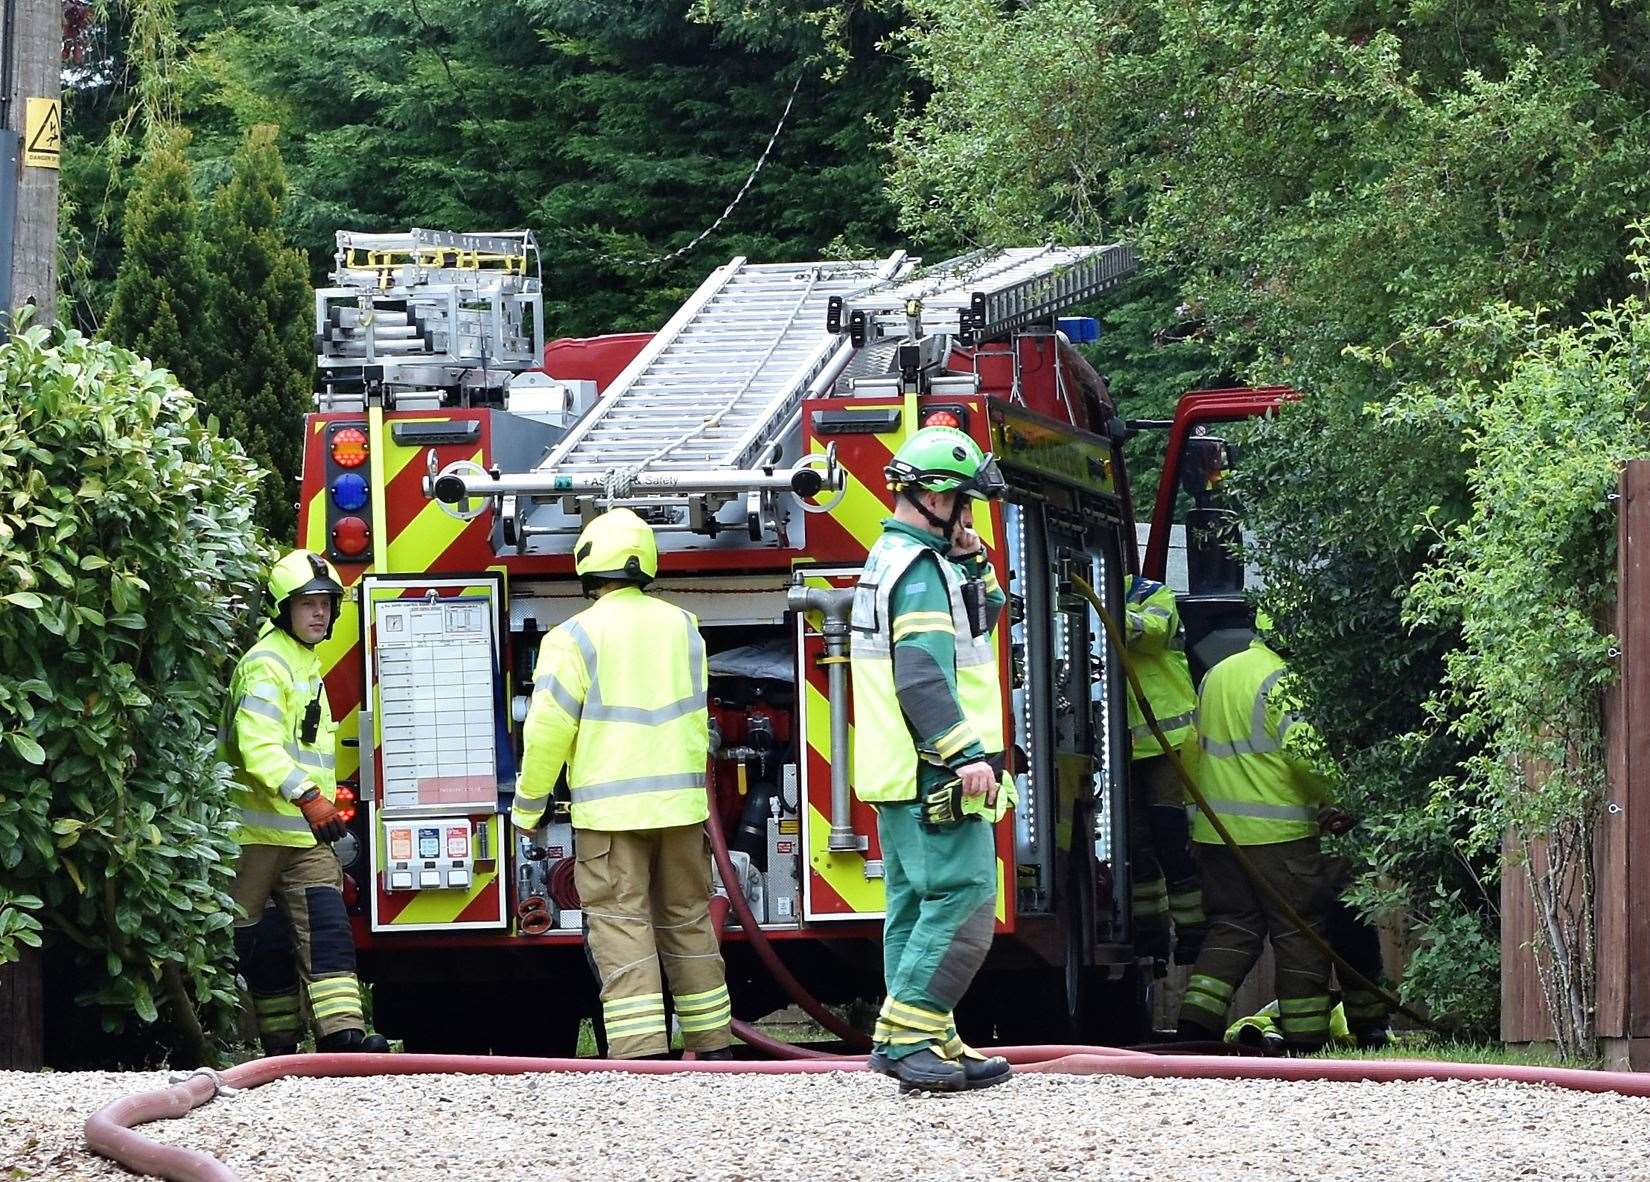 Firefighters on the scene of the Lidgate blast in May